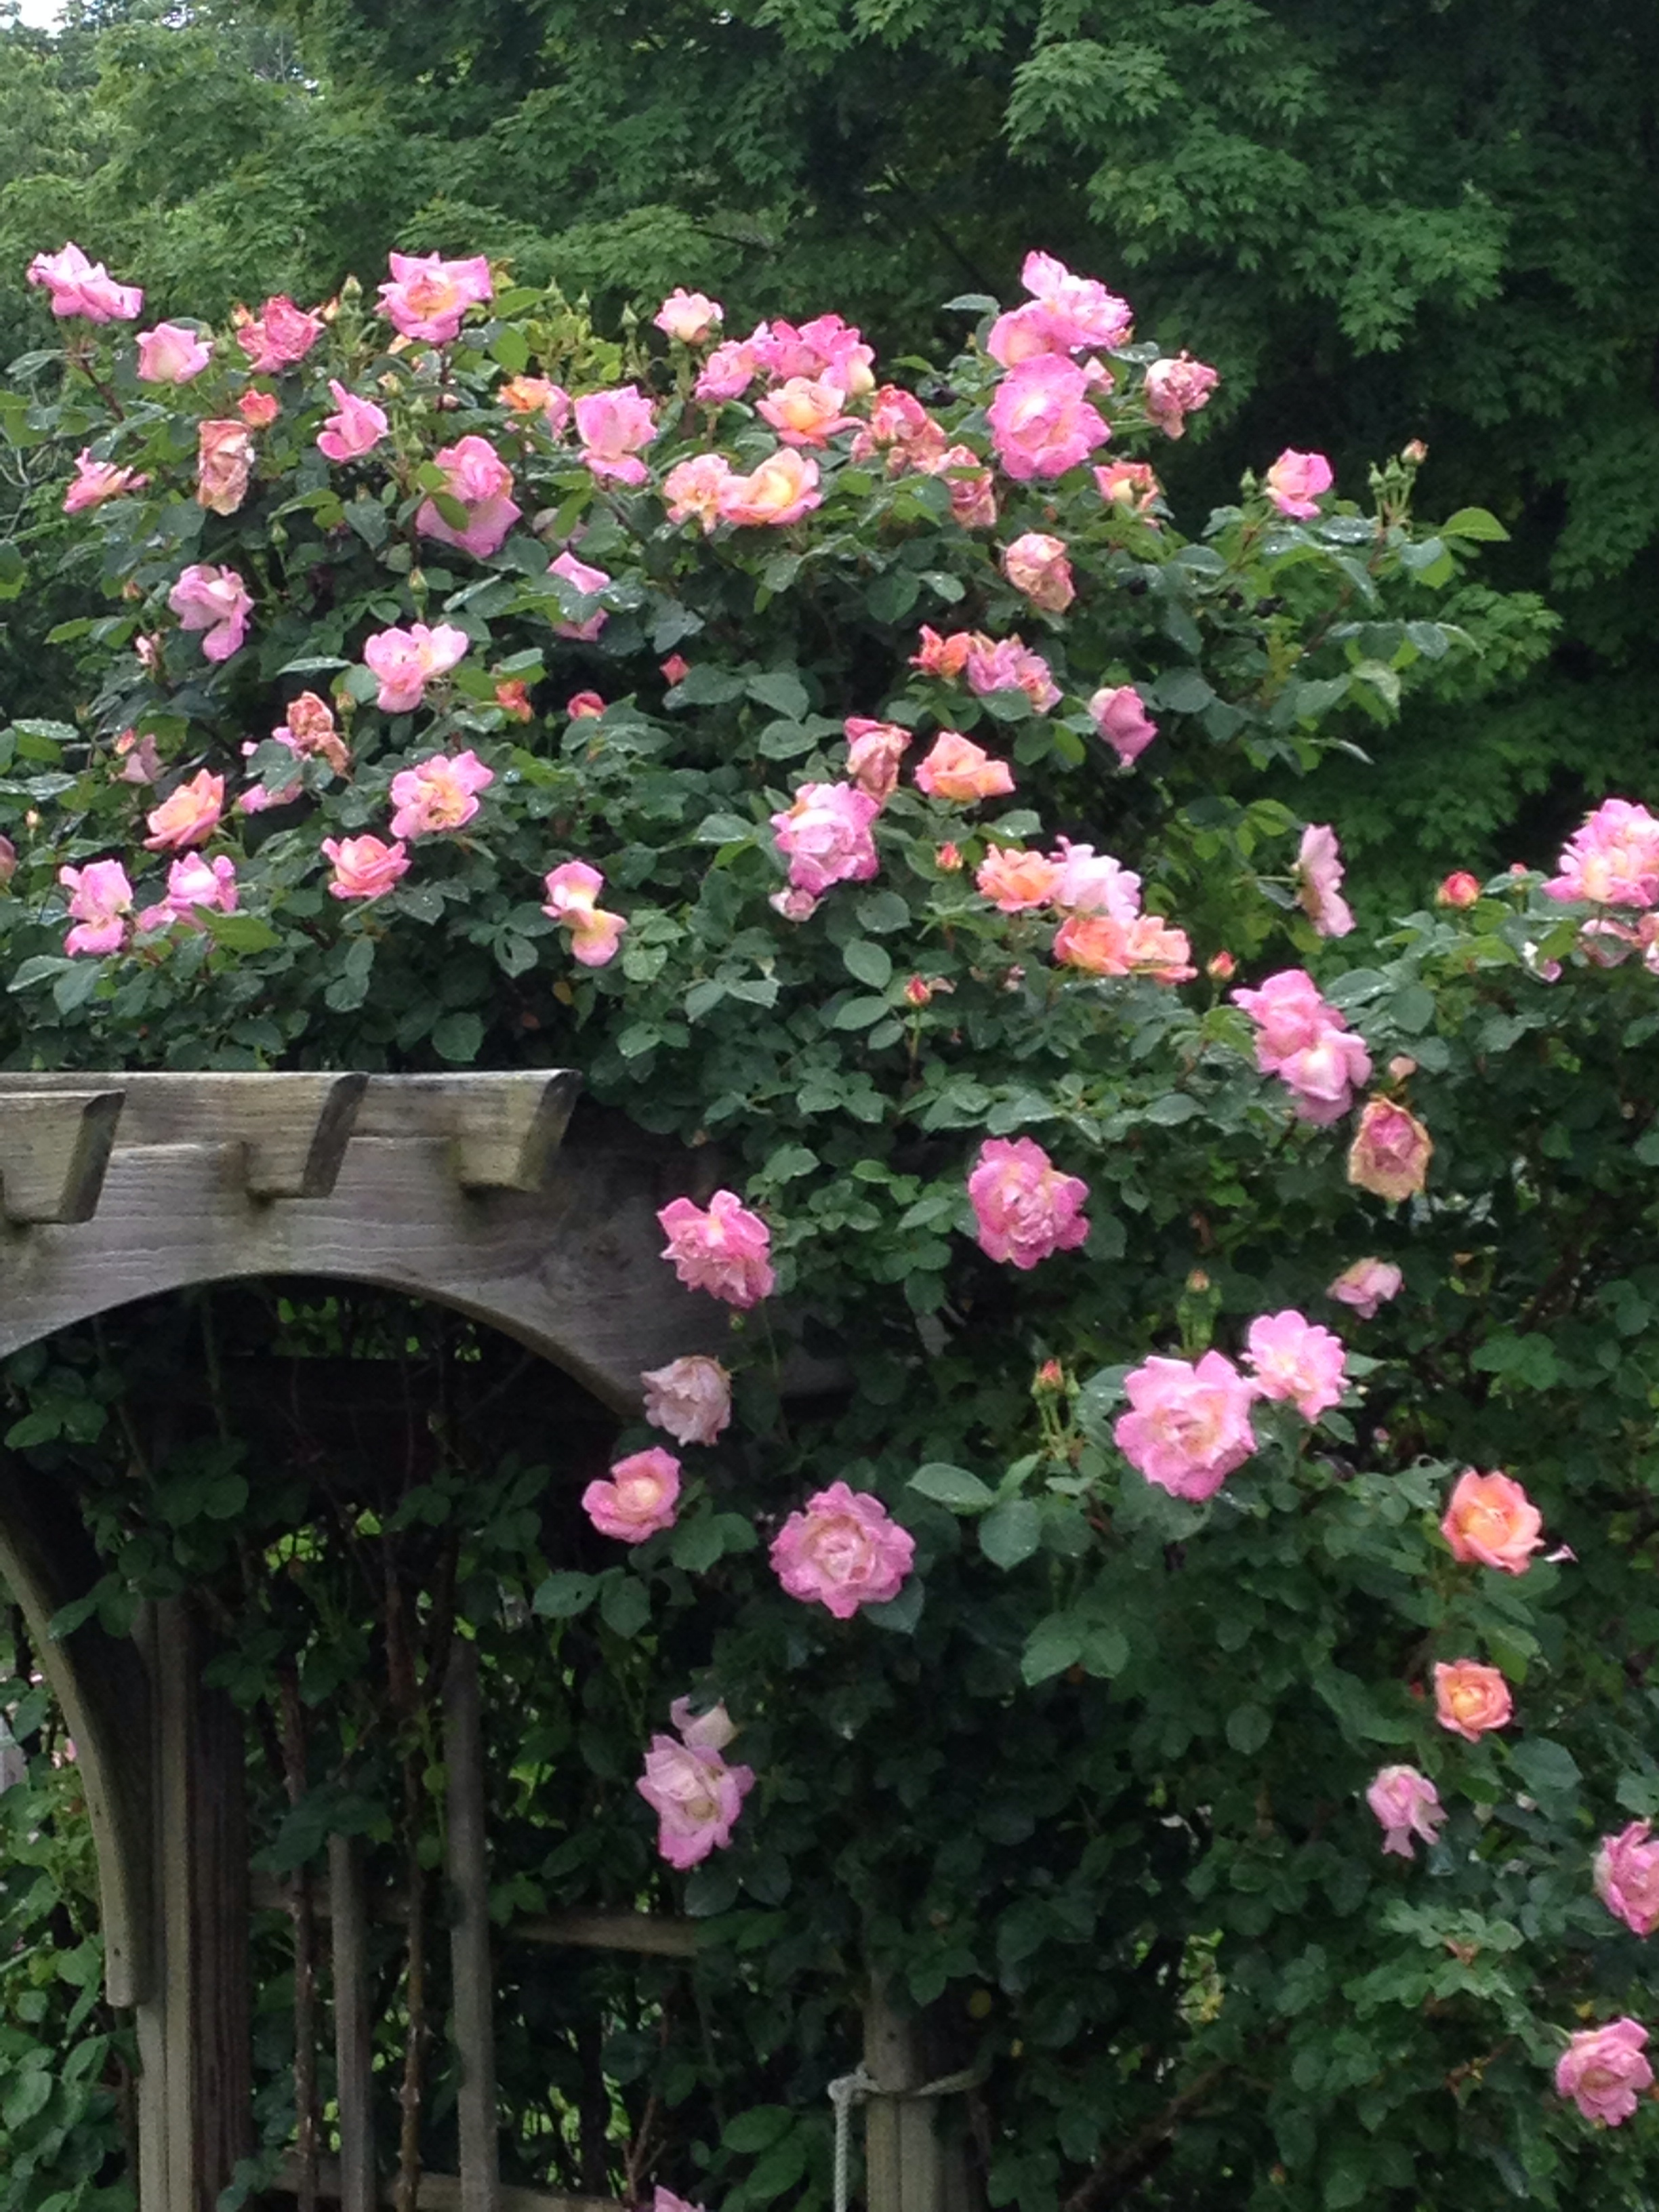 The climbing roses over the arbor this Spring.